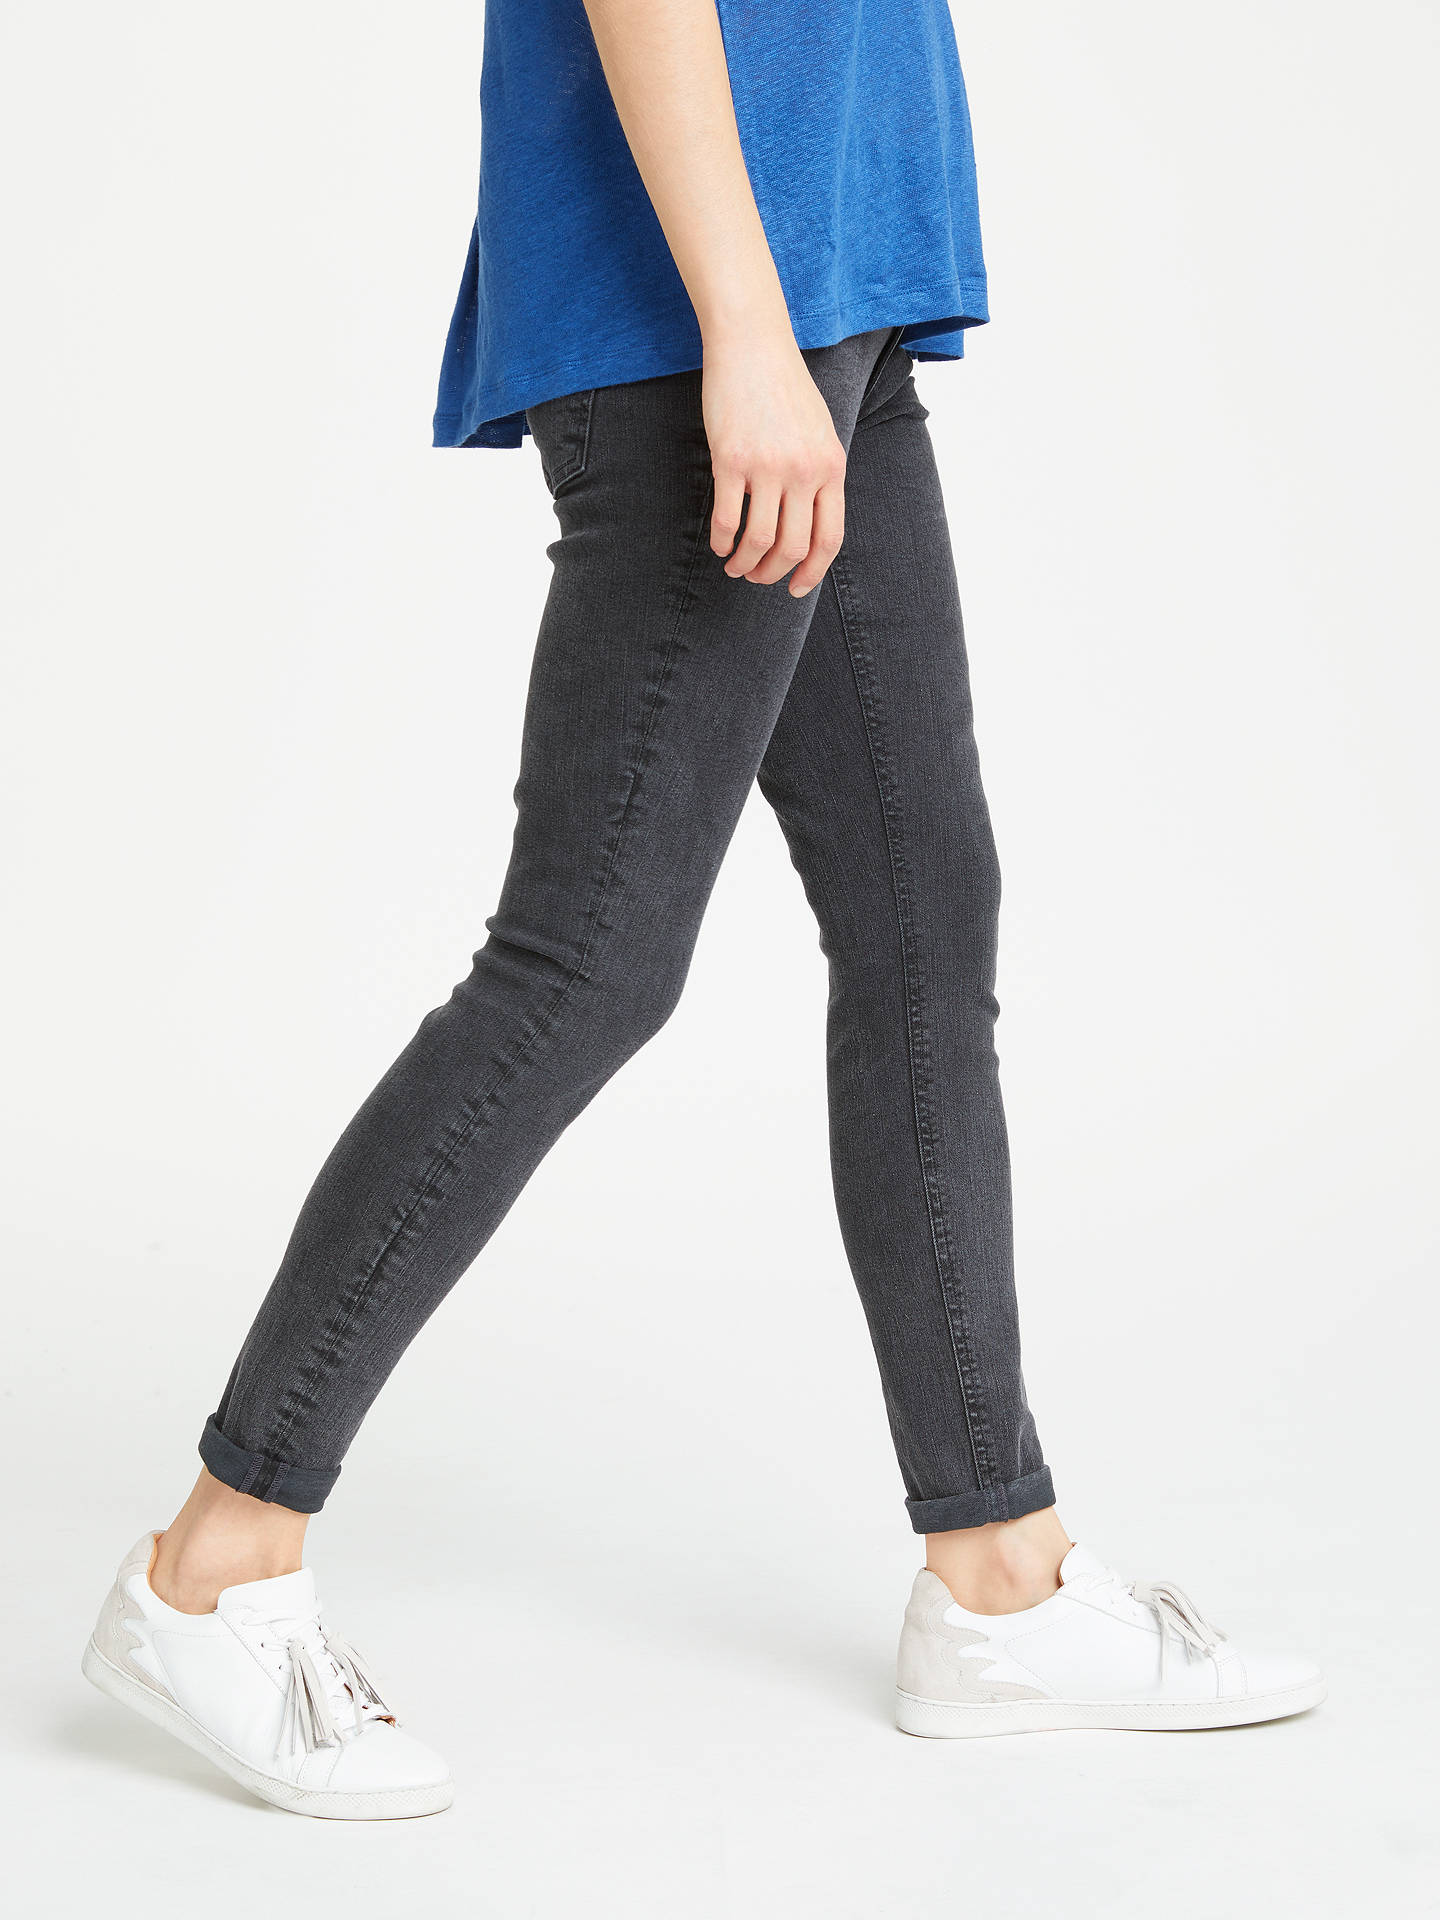 BuyAND/OR Abbot Kinney Skinny Jeans, Charcoal, 26 Online at johnlewis.com